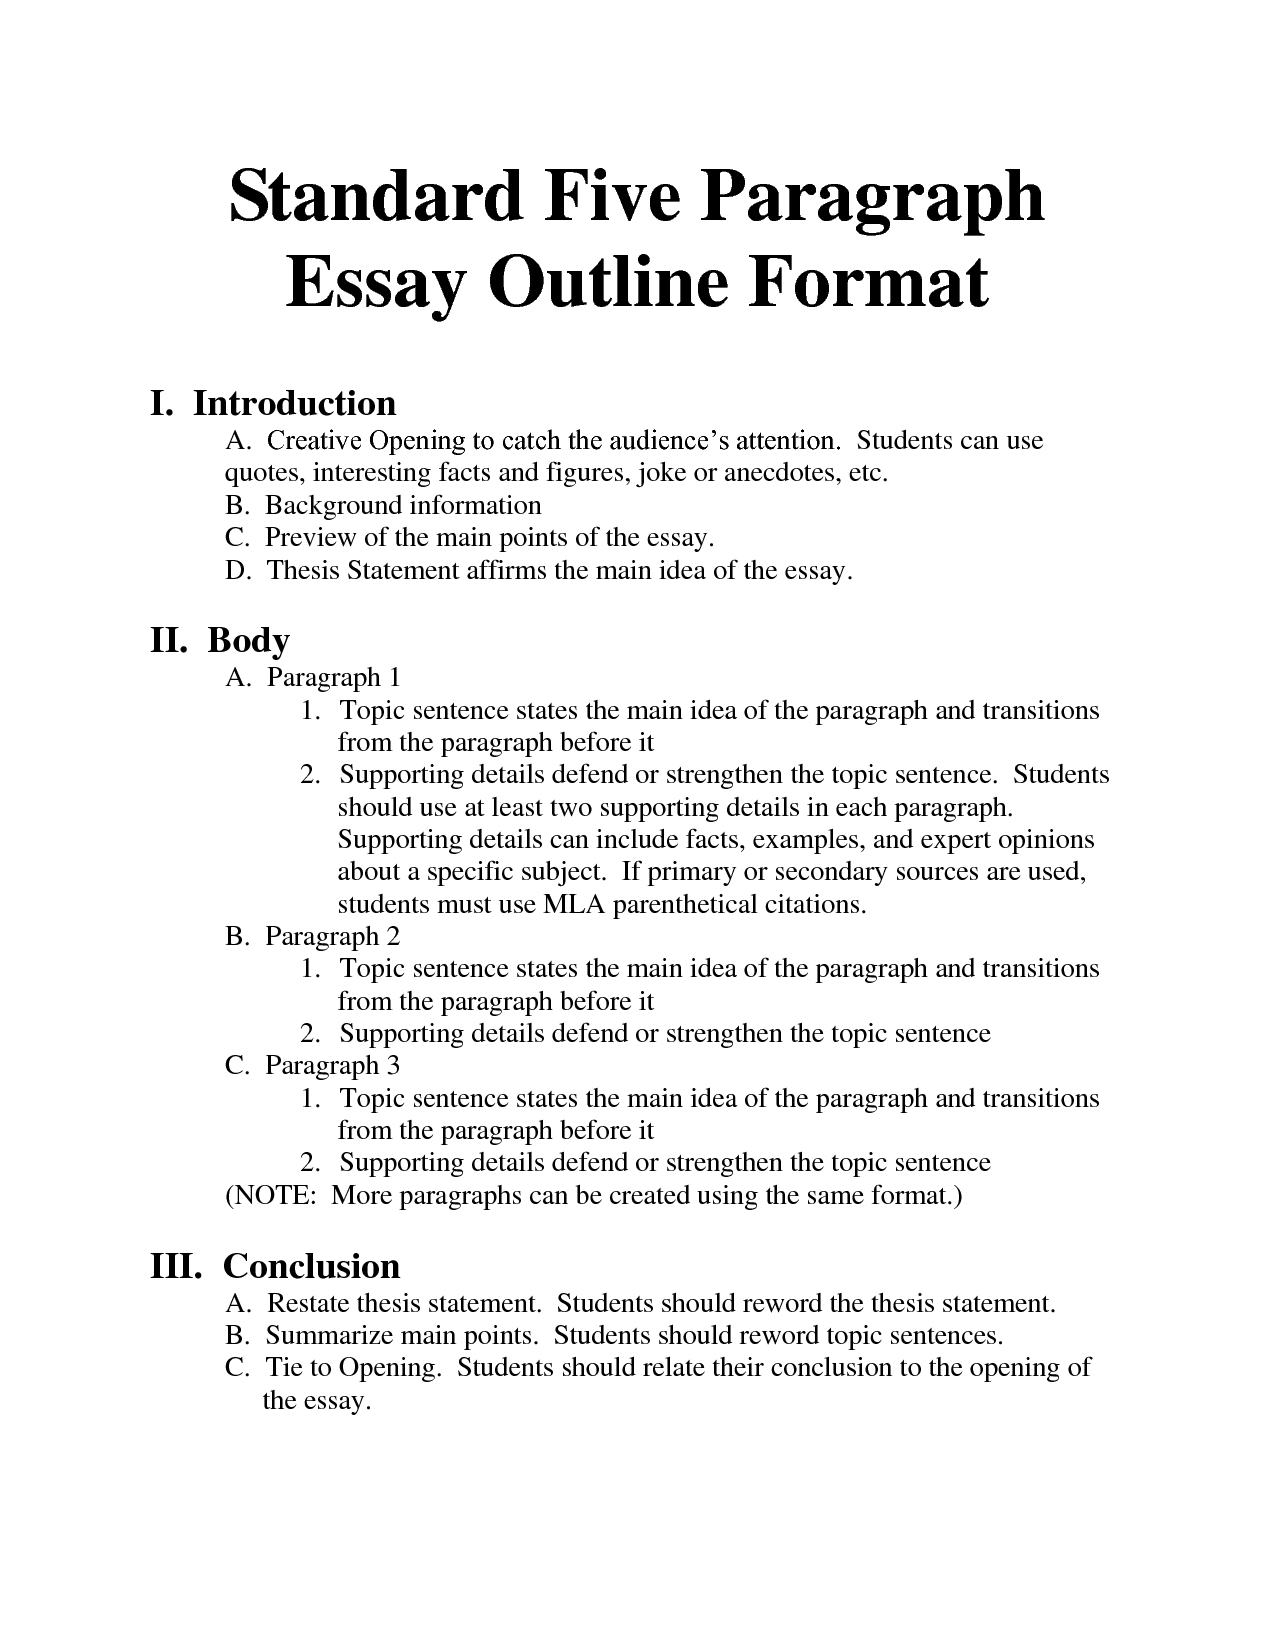 003 What Is An Essay Outline Example Stunning A Hero Argumentative Format What's Look Like Full